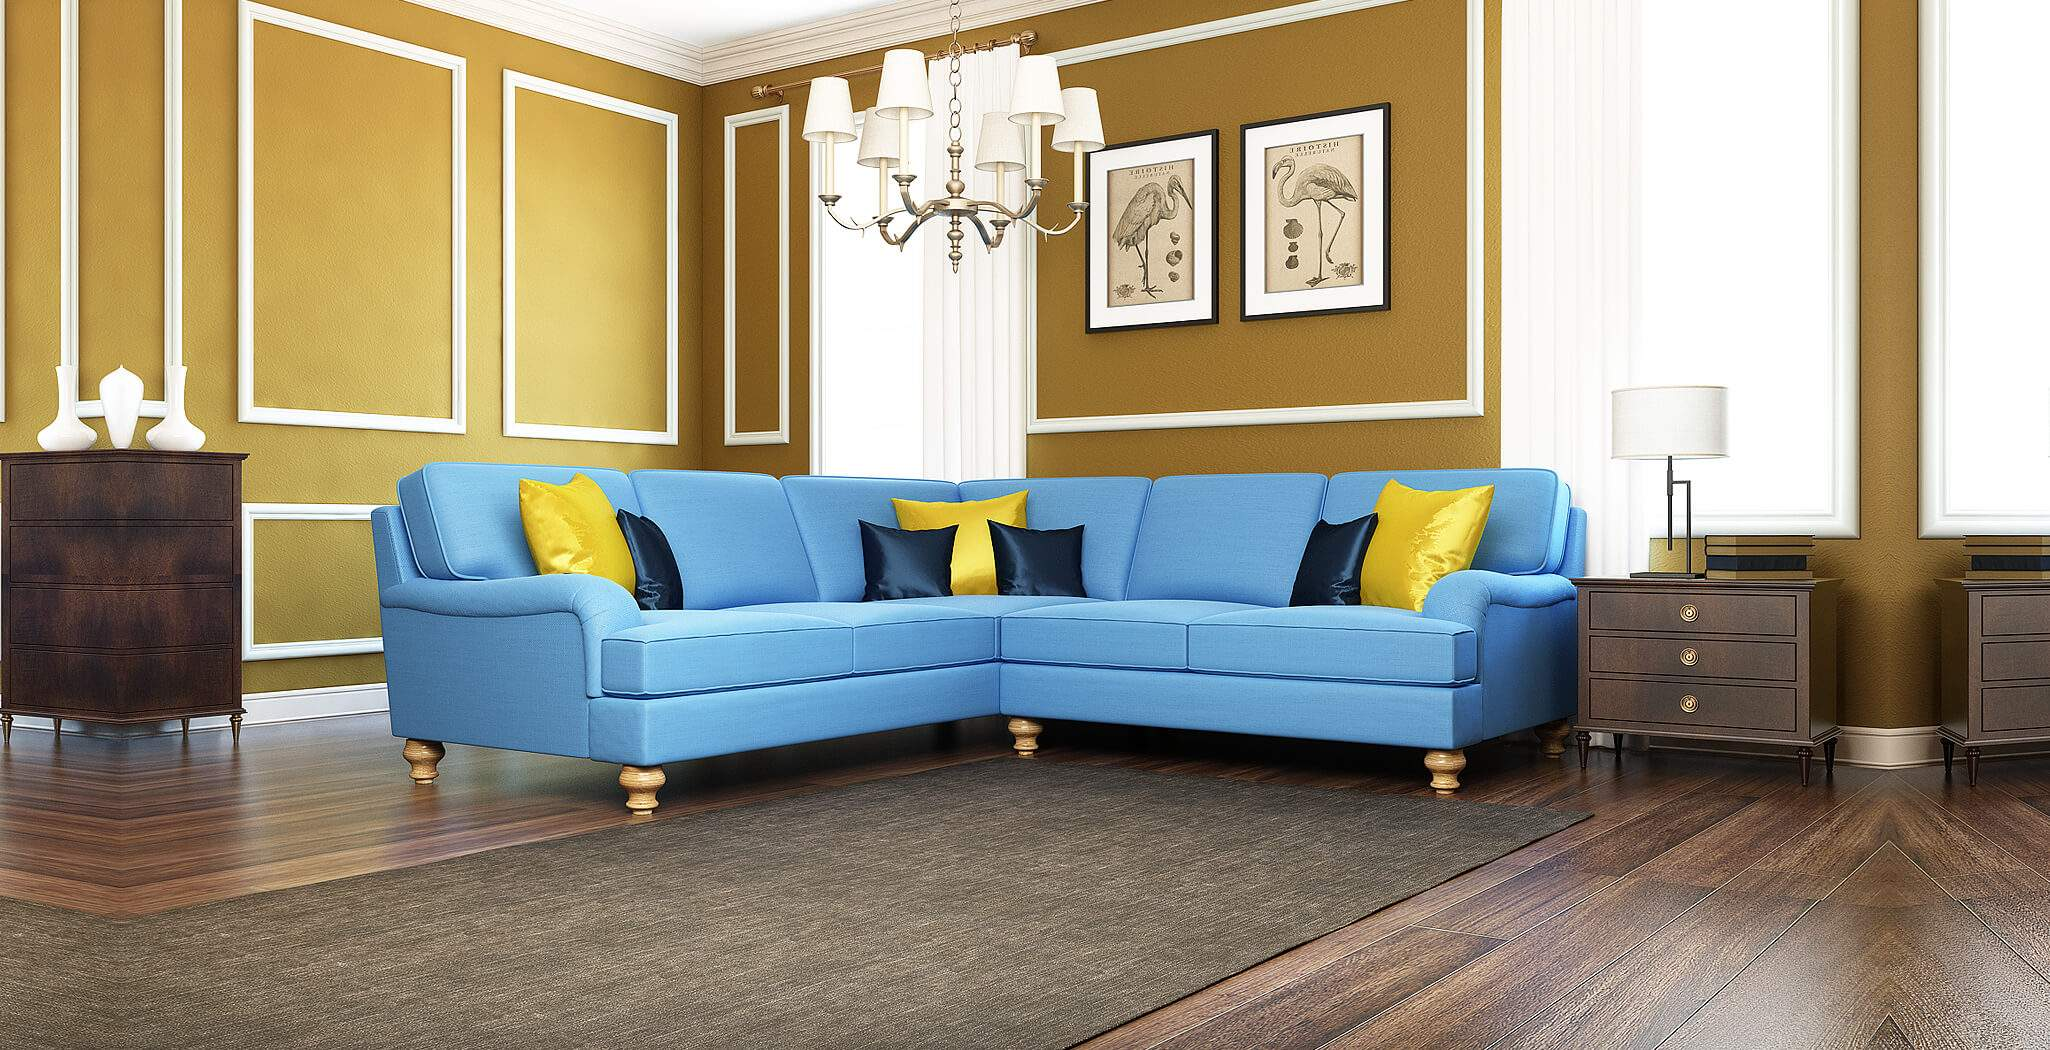 hamilton sectional furniture gallery 1